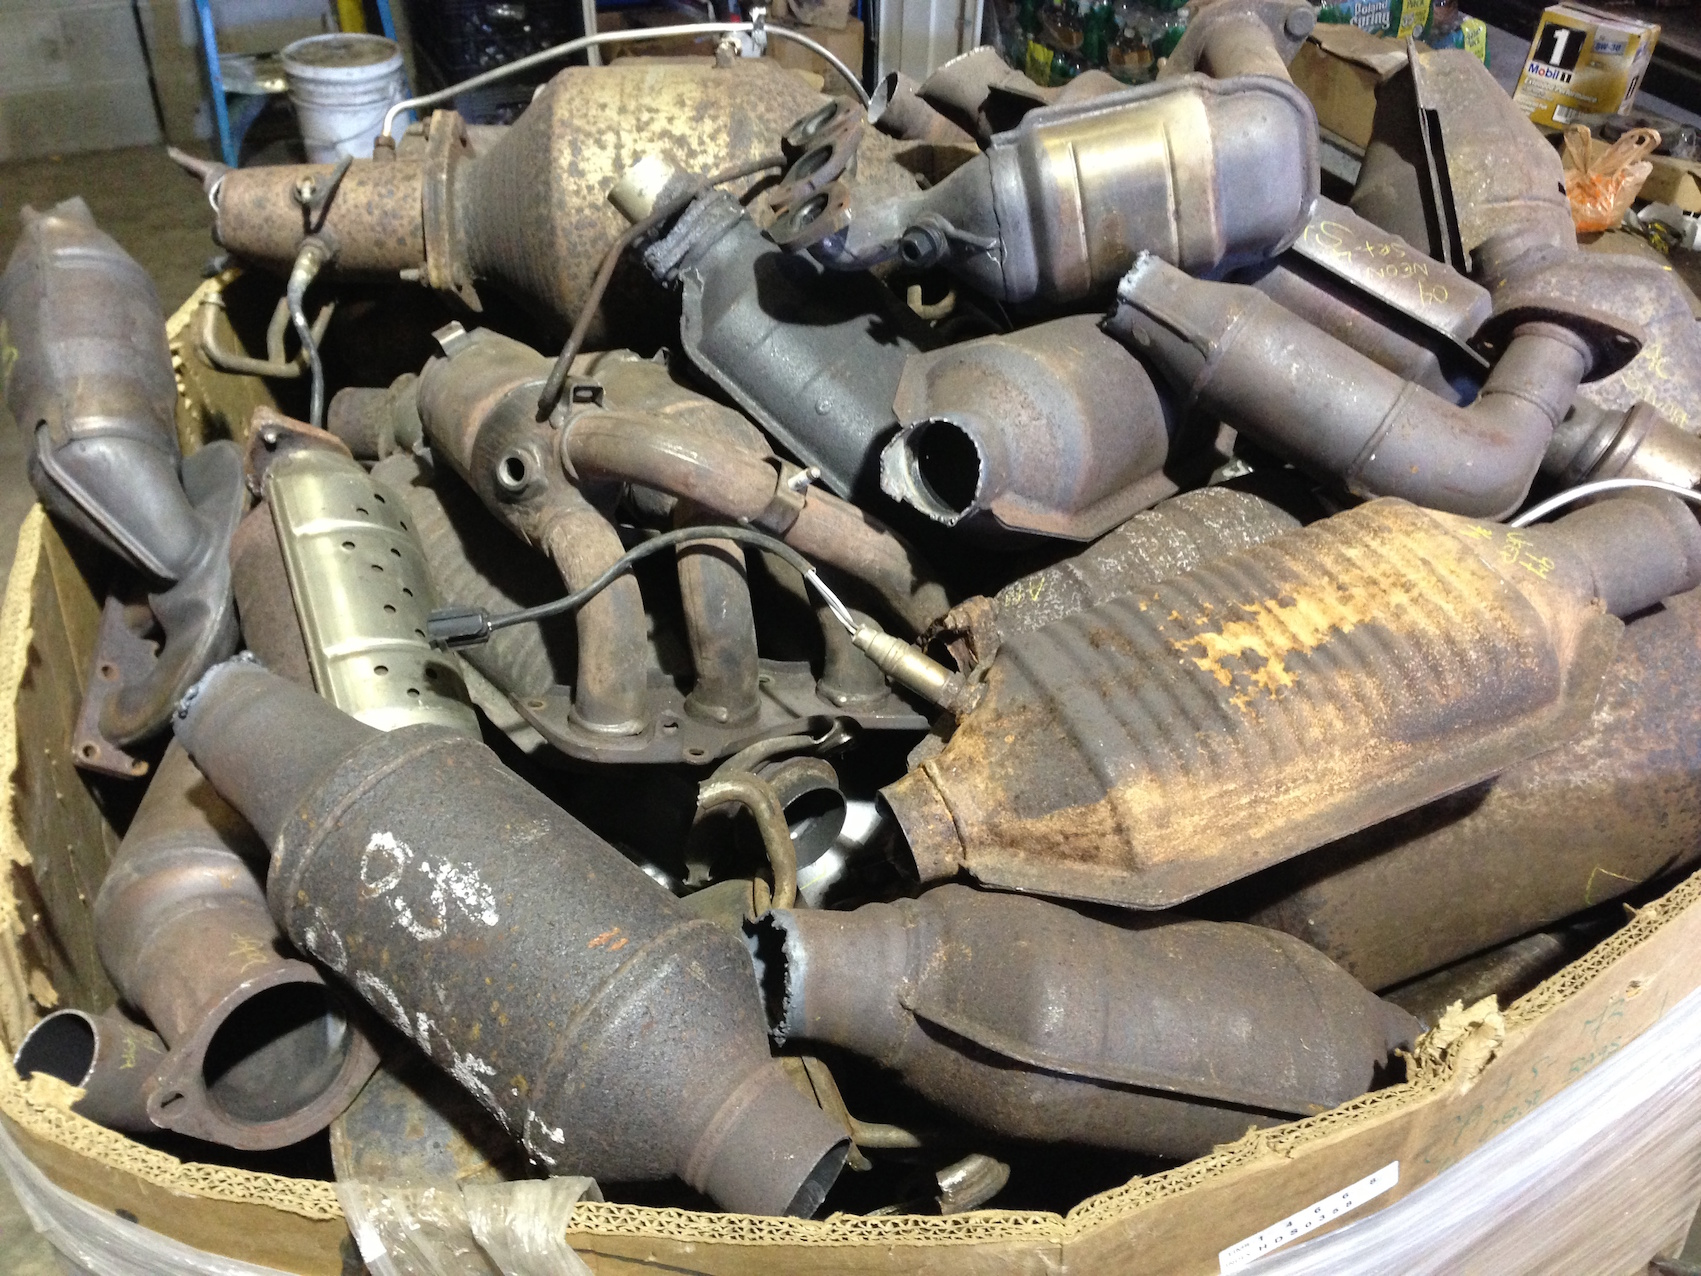 Scrap Catalytic Converters - What is the Value, and Why?